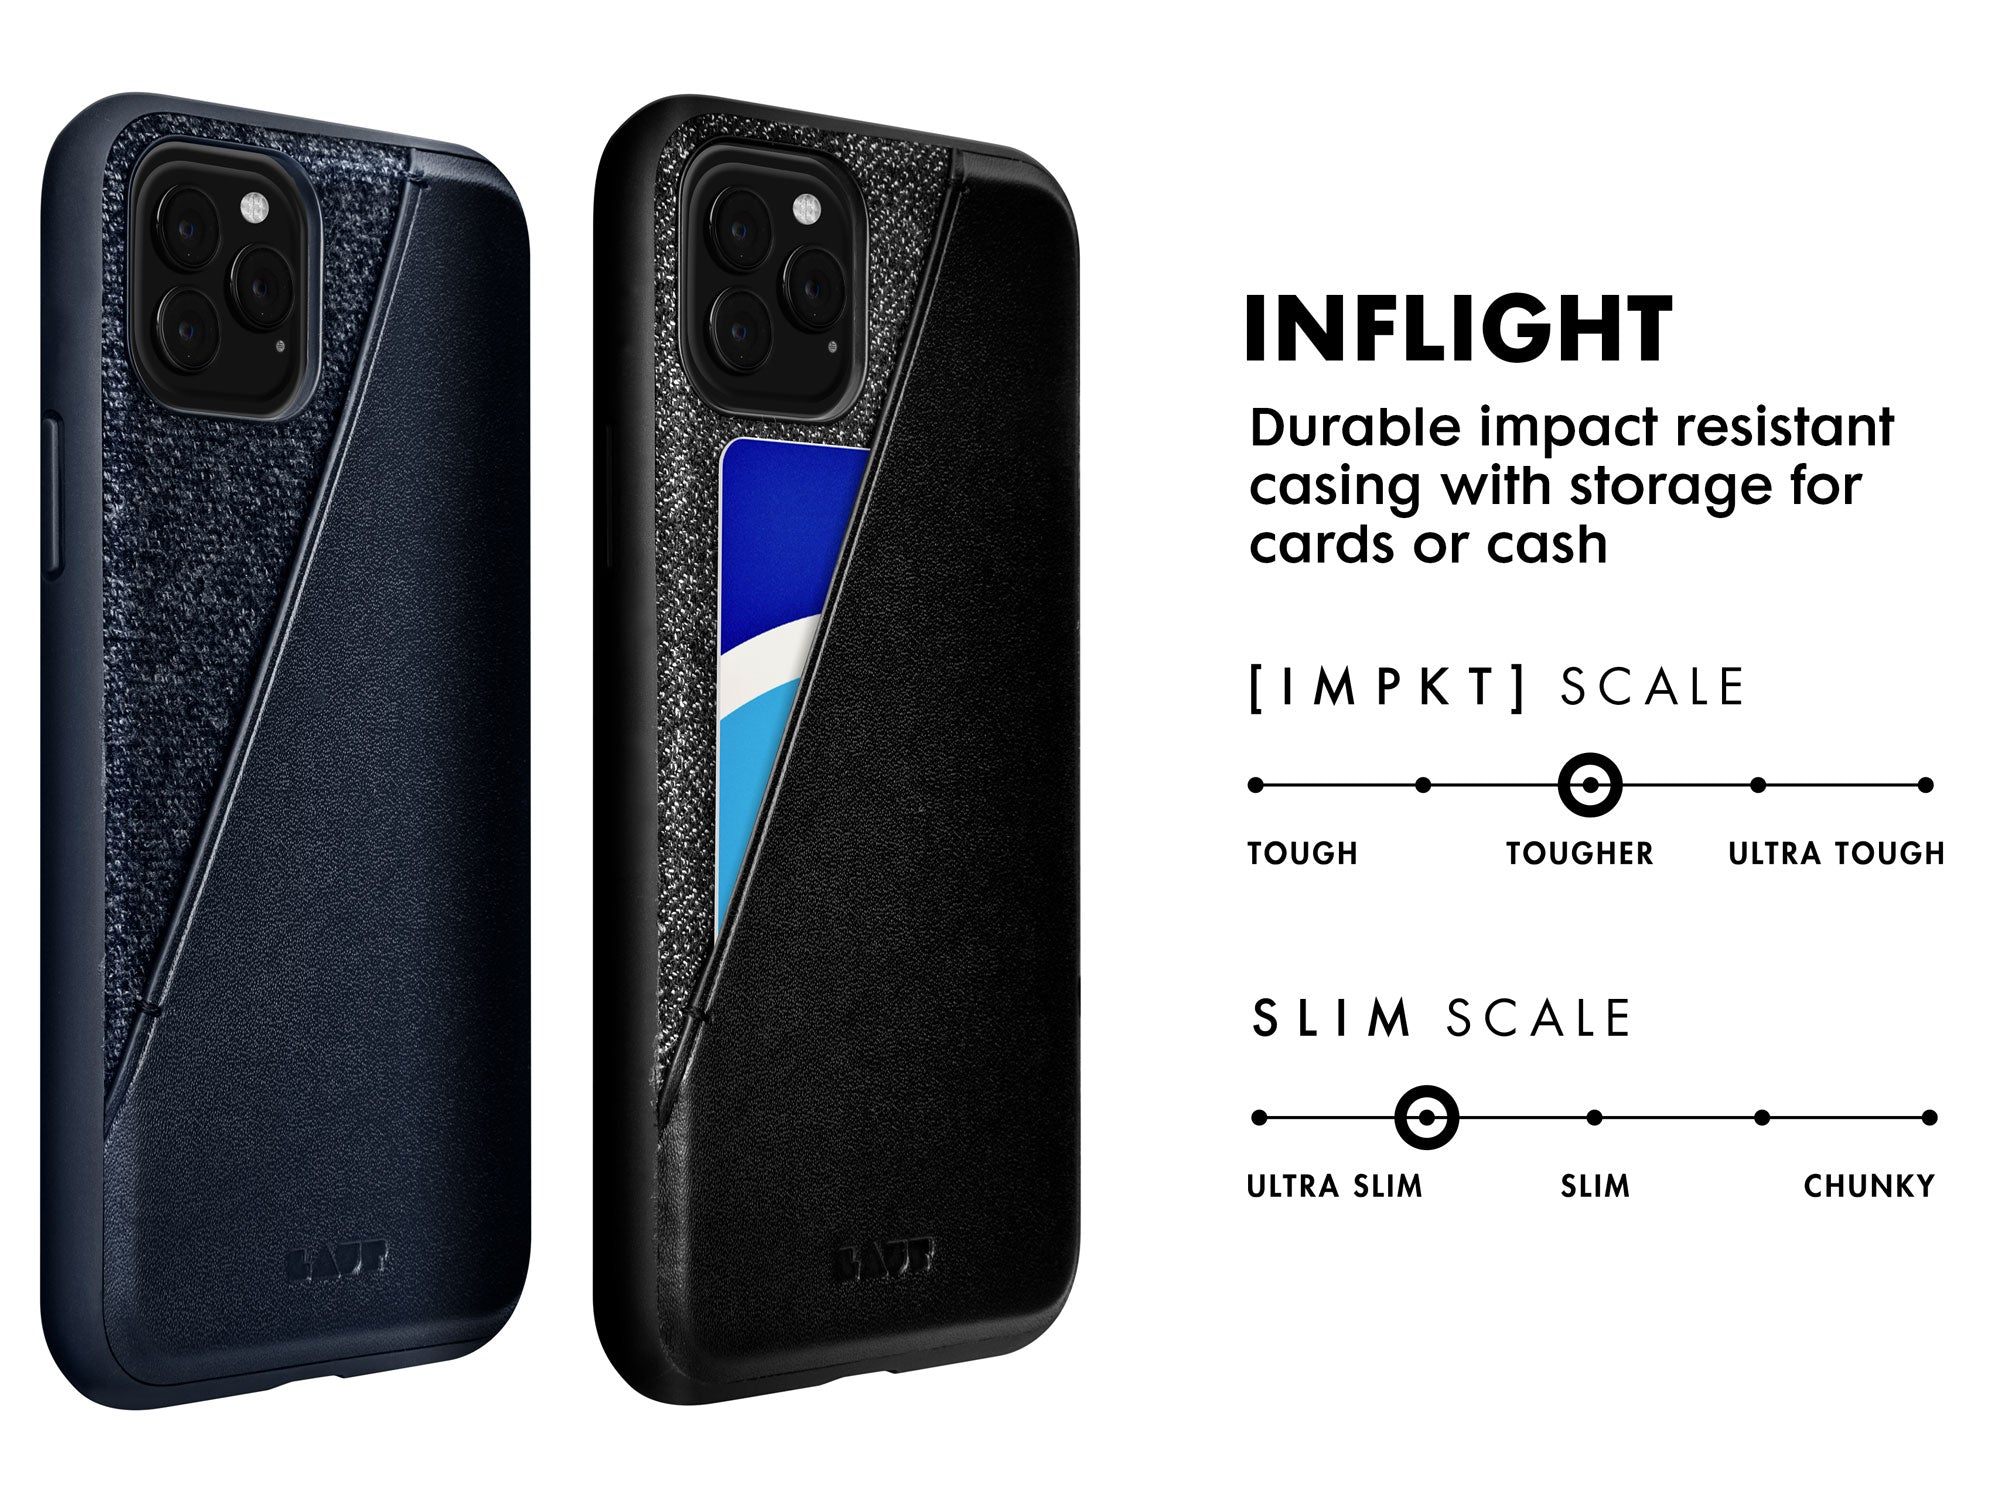 InFlight for iPhone 11 series